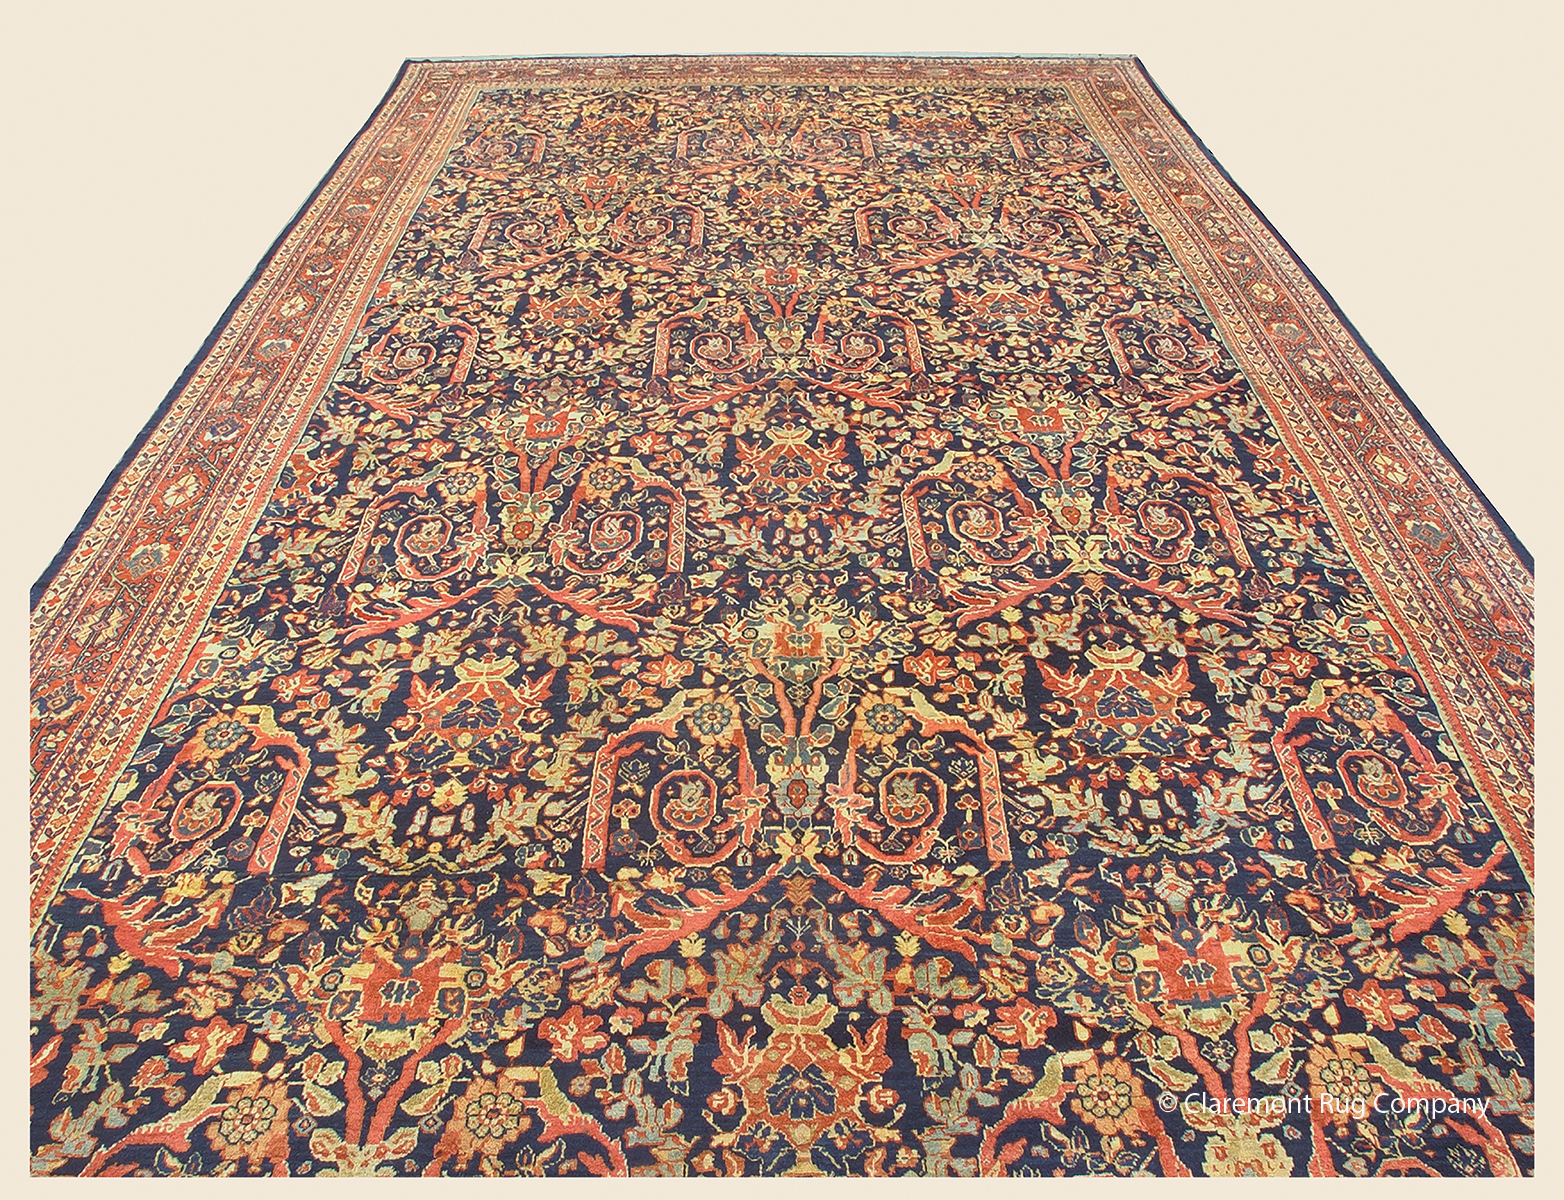 19th century Antique Persian Sultanabad with repeating Mustafavi floral pattern 14ft x 24ft